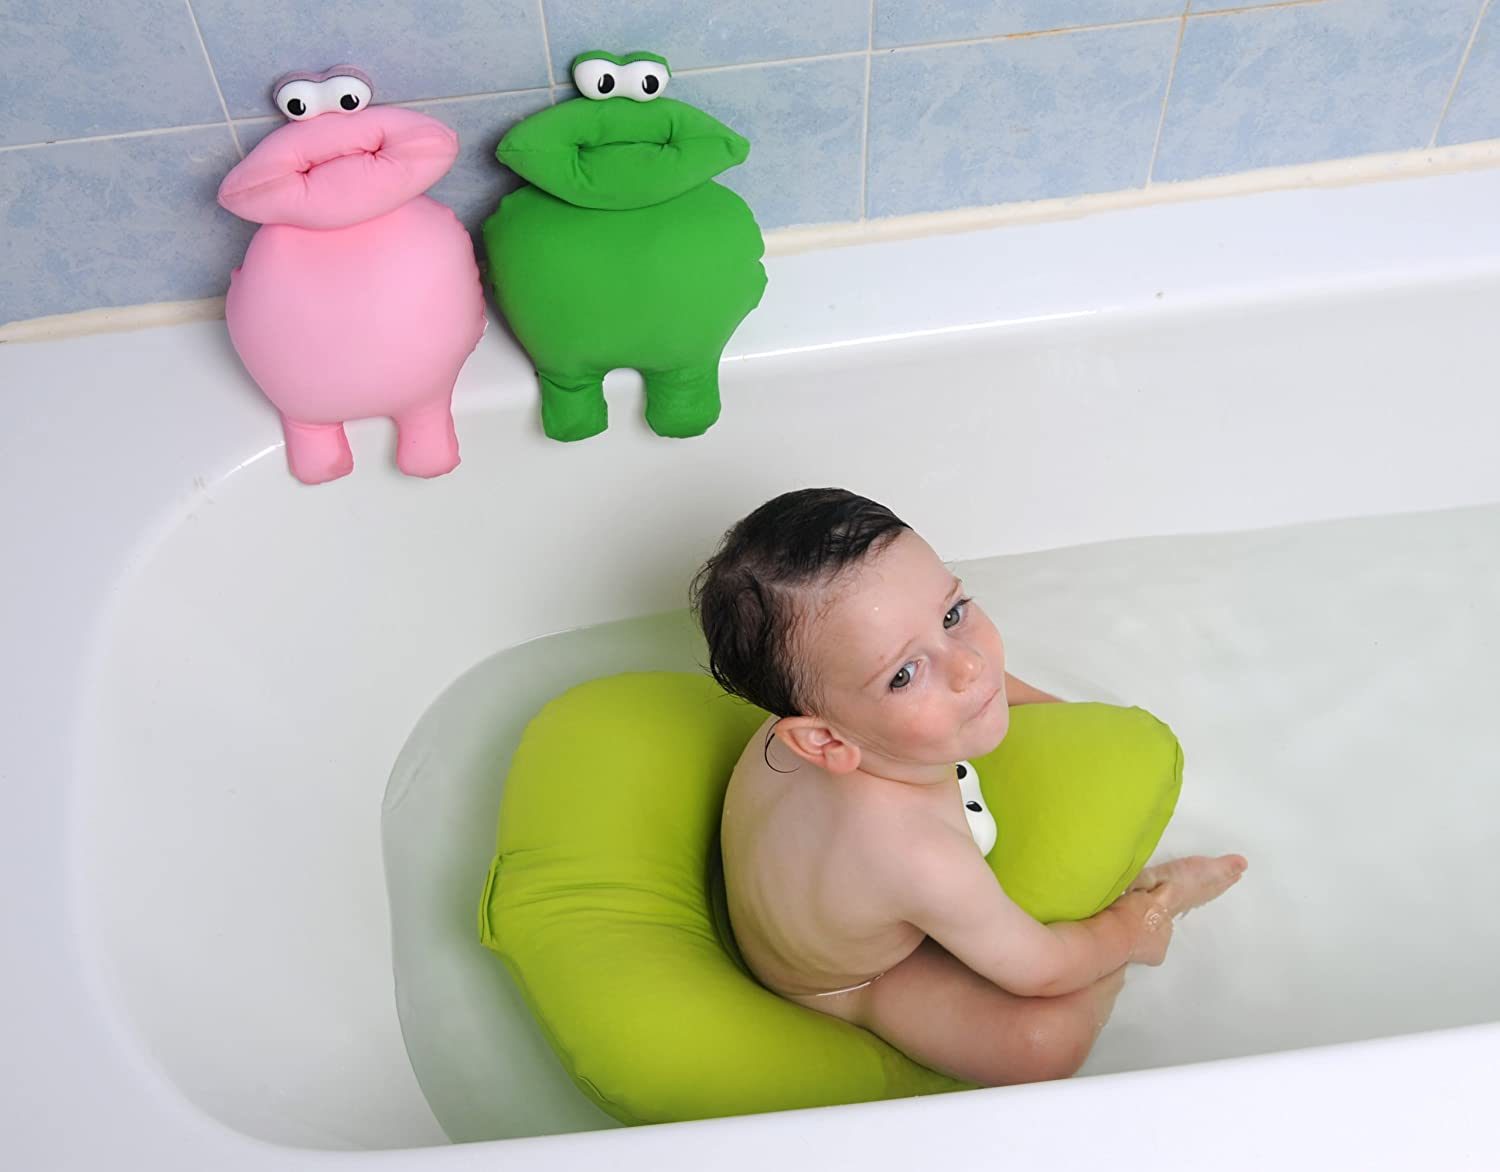 Amazon.com : Tito Bath Tub Cushioned Stuffed Animal Plush Toy ...